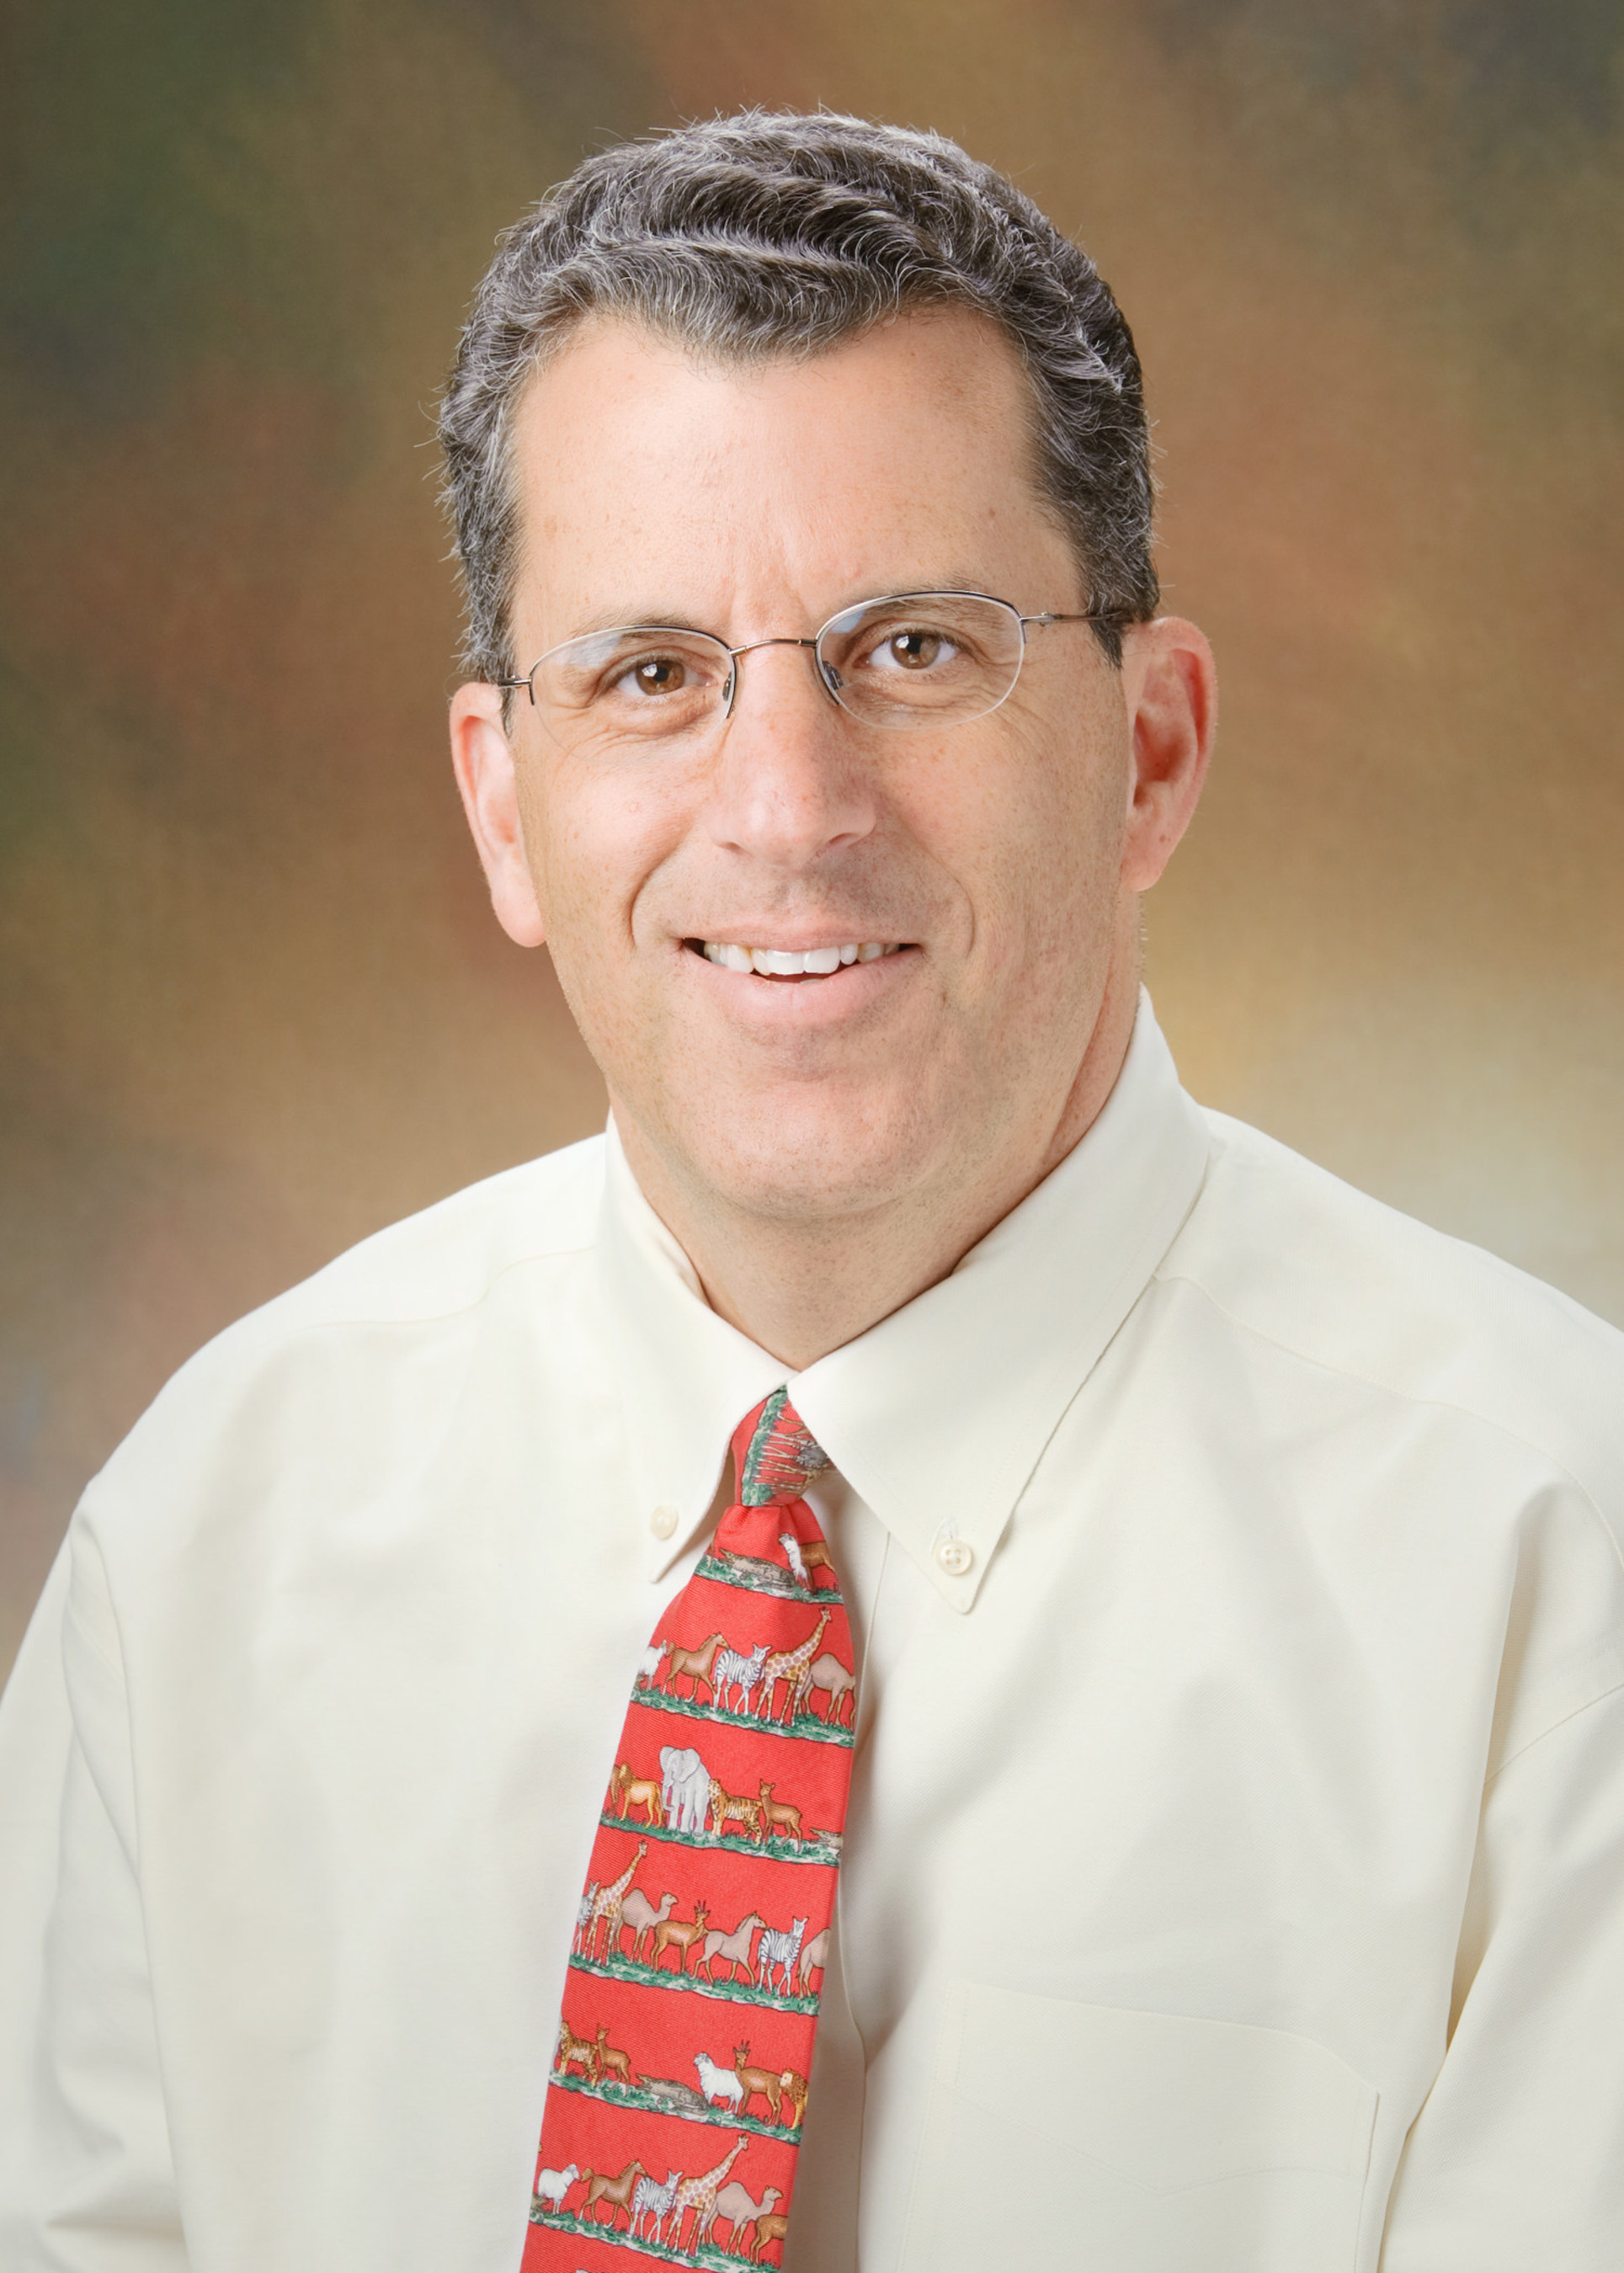 Peter C. Adamson, M.D., a pediatric oncologist and leading scientist at The Children's Hospital of Philadelphia (CHOP), has been appointed by President Obama to the National Cancer Advisory Board.